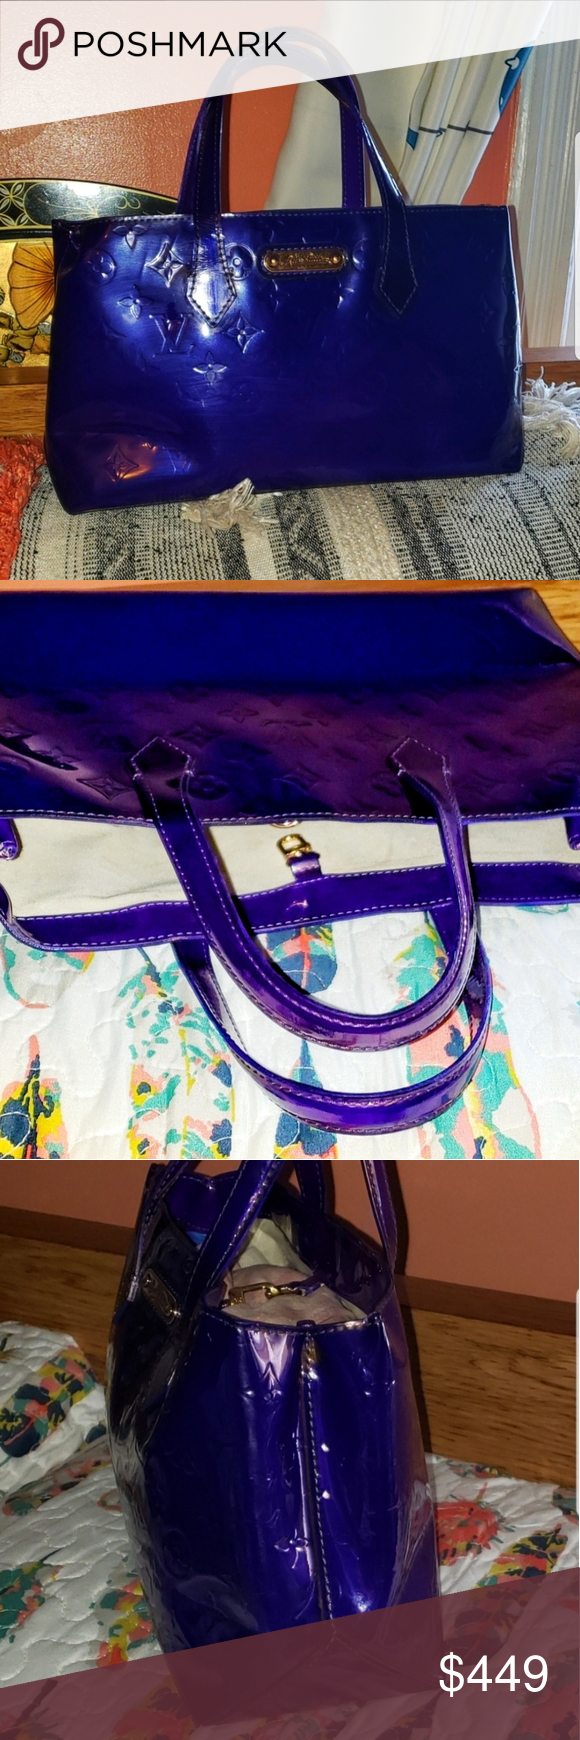 Louis Vuitton Custom Purple Vernis Wilshire PM Combines elegance and sophistication. She has been professionally dyed and sealed this amazing violet color. She features dual flat handles, front Louis Vuitton signature plaque, and gold hardware.   The interior is open with one zippered pocket. The serial number, SN1192, is in an odd spot and is difficult to capture.   She measures 12 by 7 by 5.  LAST PICTURE IS FOR SIZE REFERENCE ONLY!! Louis Vuitton Bags Satchels